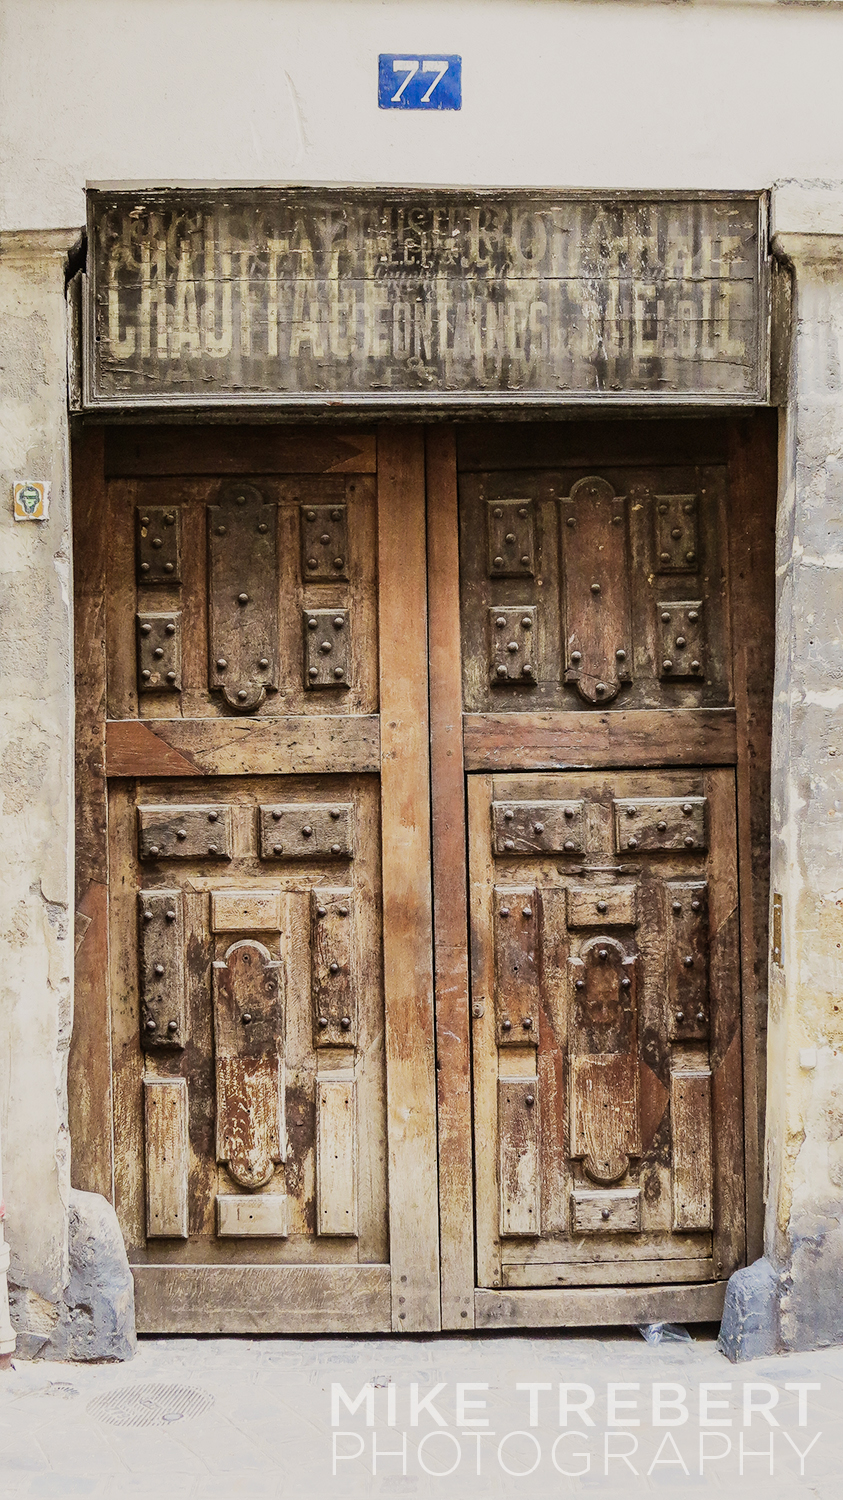 Ancient doorway in The Marais, Paris